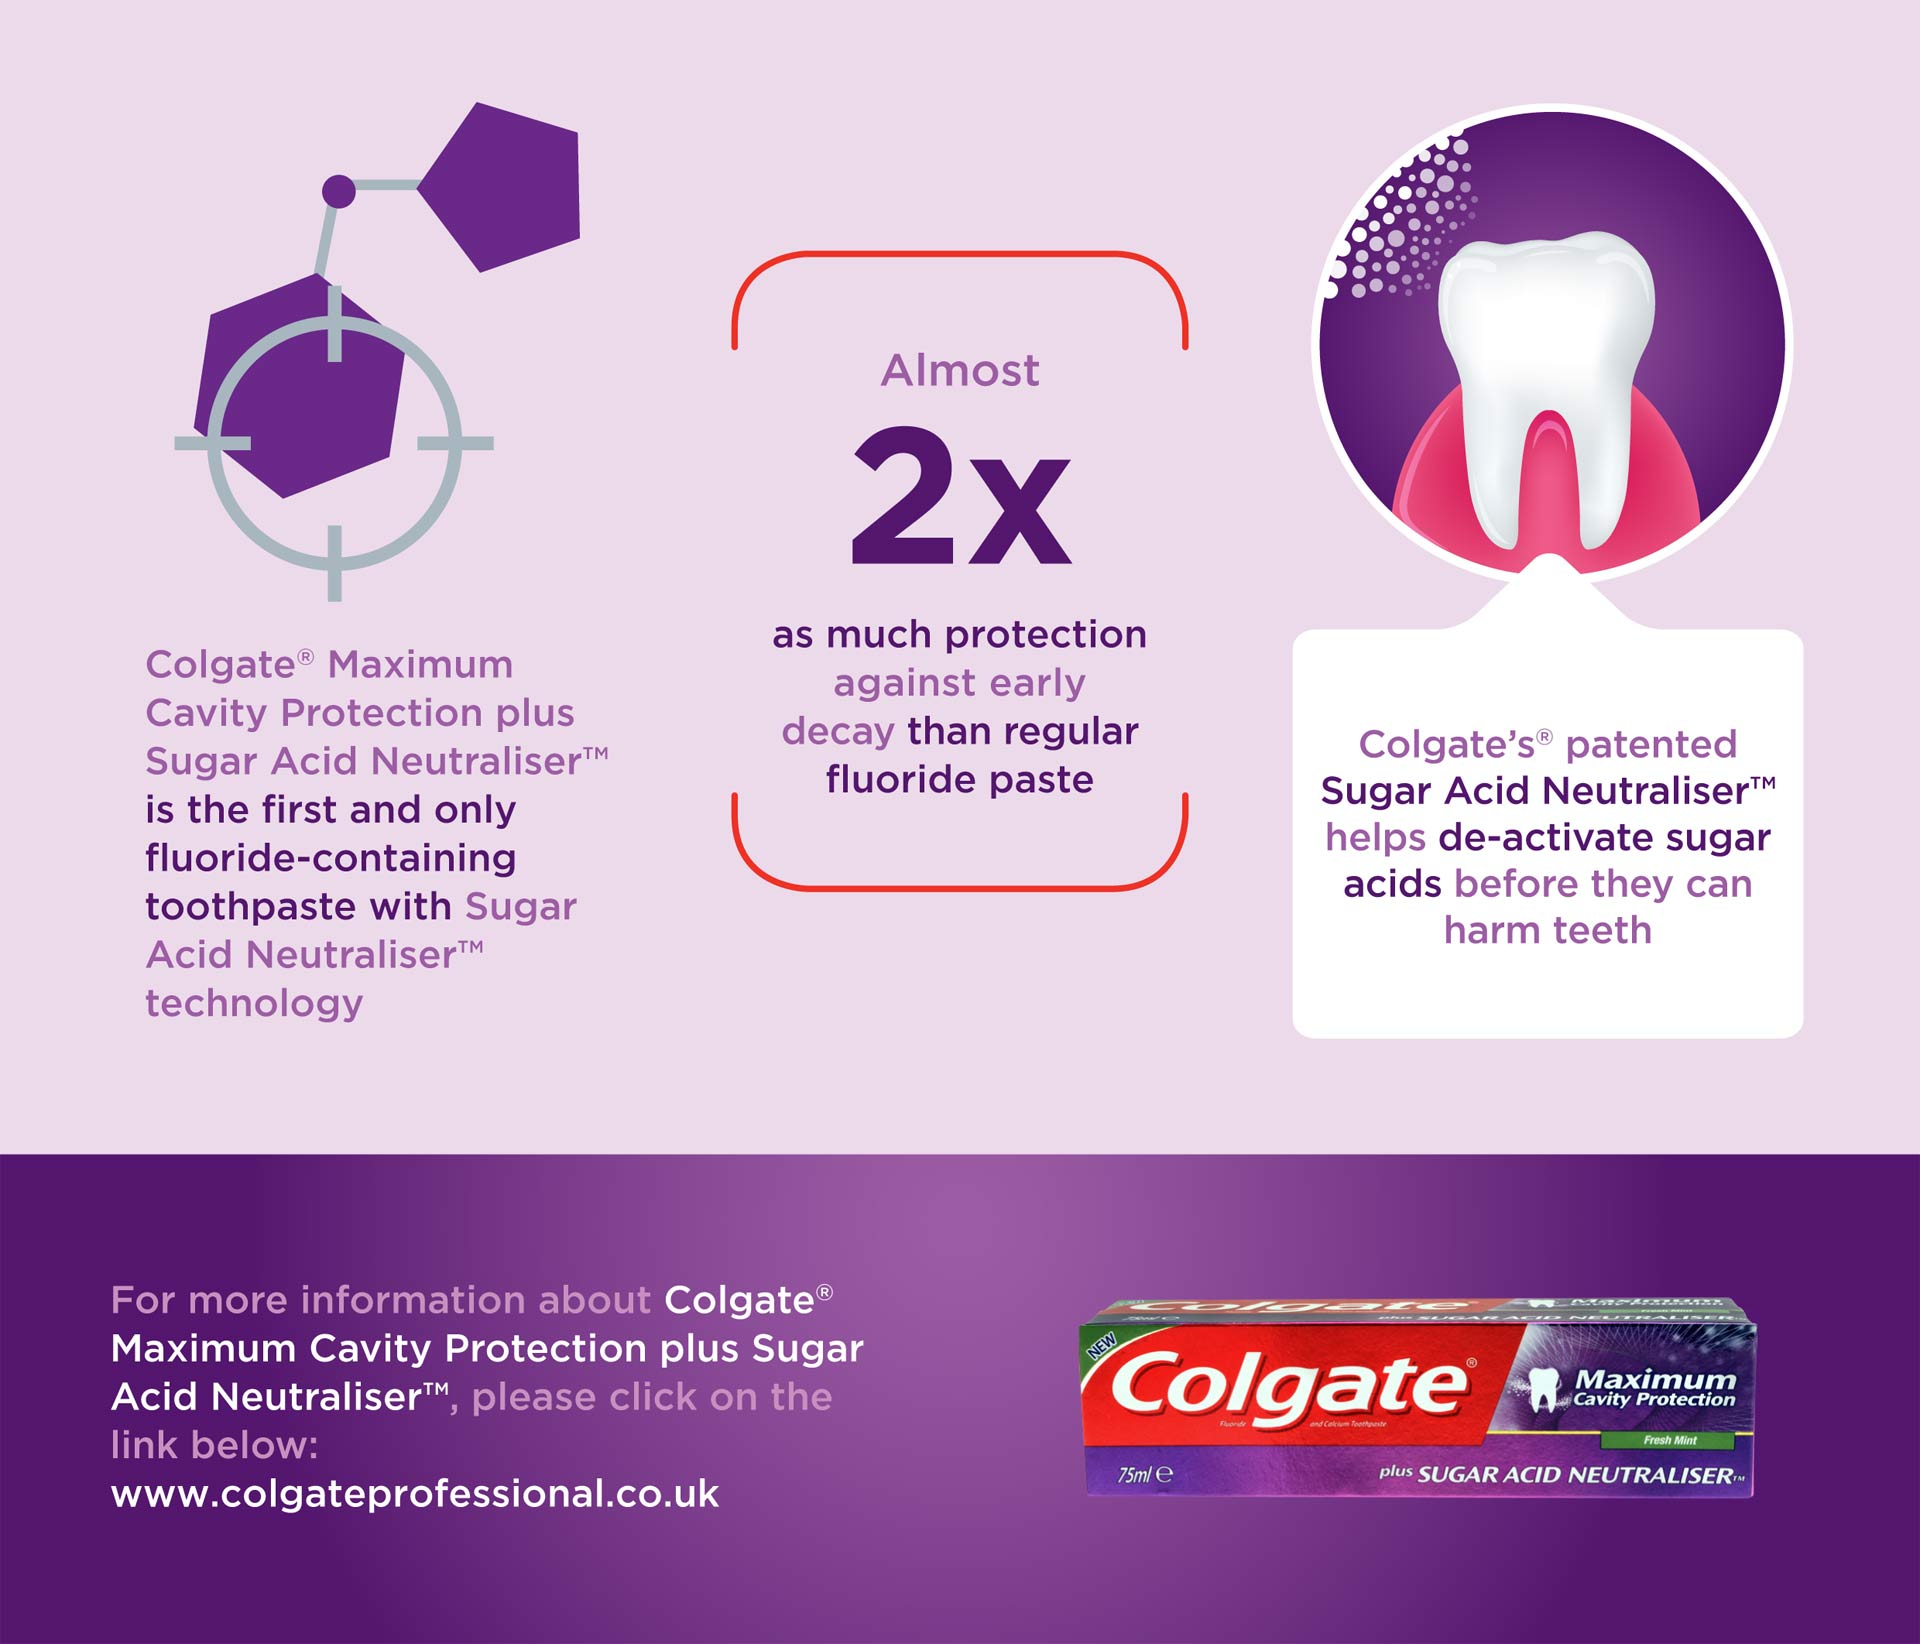 Colgate infographic, section four